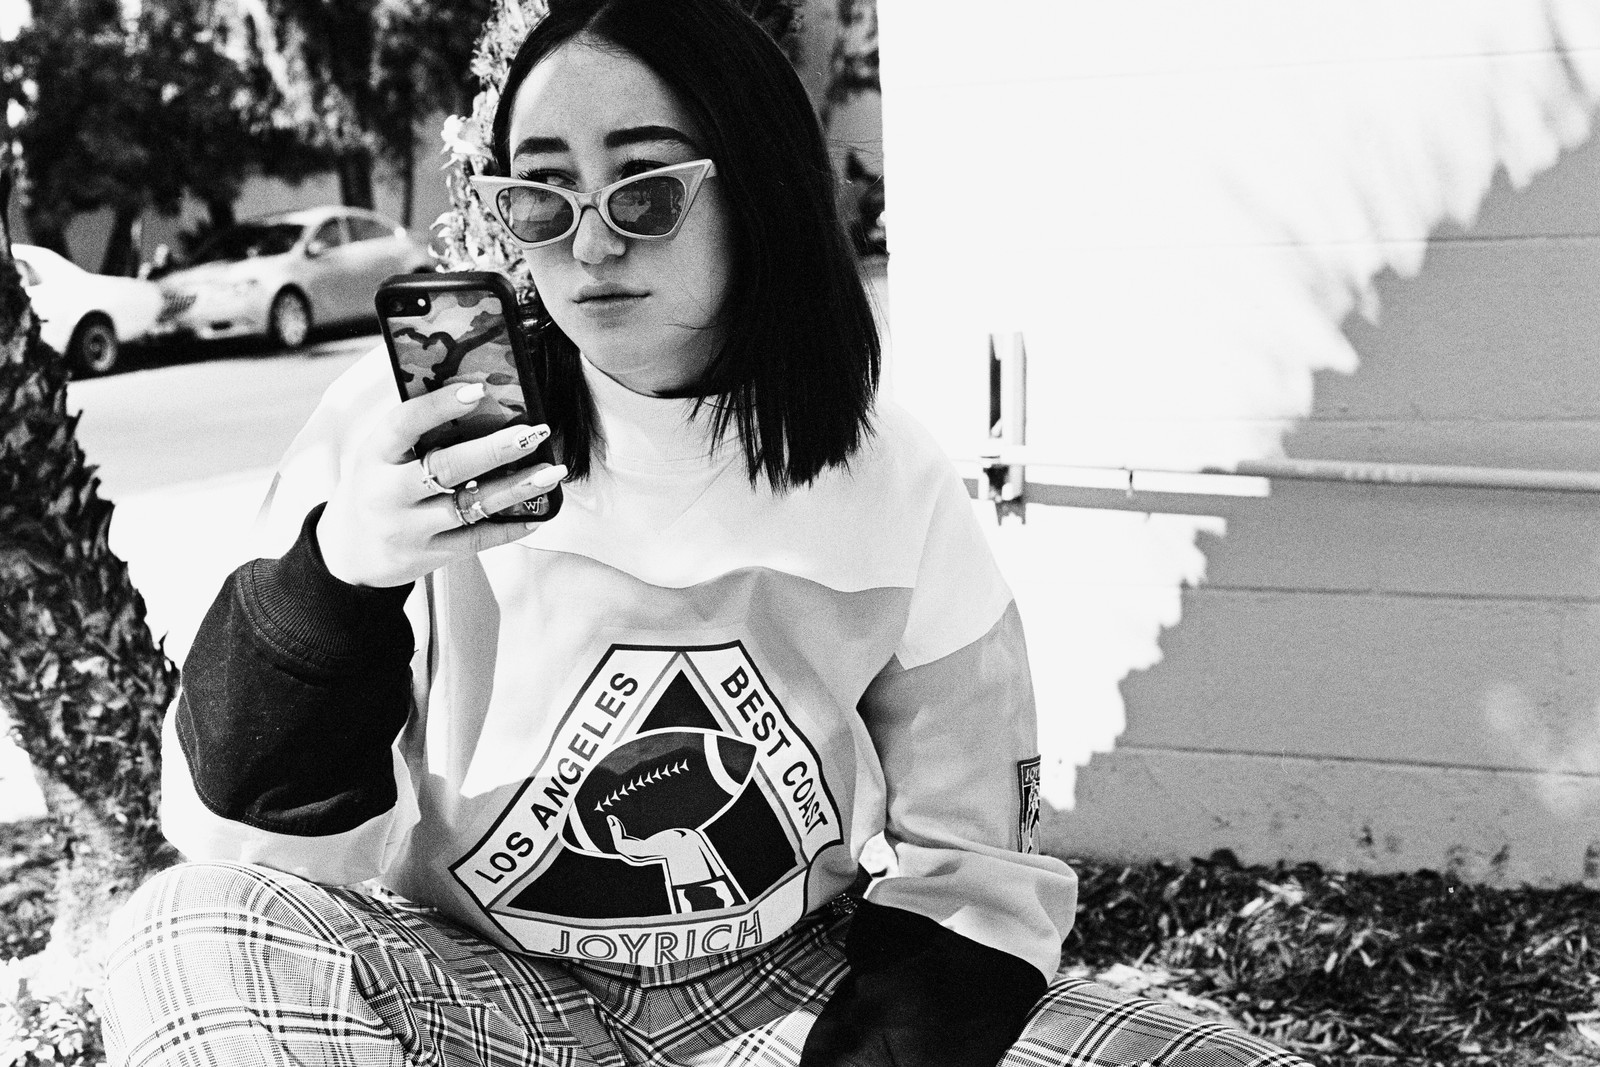 Noah Cyrus Miley Sister NC 17 Debut Album We Are MØ Joyrich Nike Reebok Interview Girl Power Joyrich Sunglasses Beret Film Photography Editorial Los Angeles Animal Rights Activism